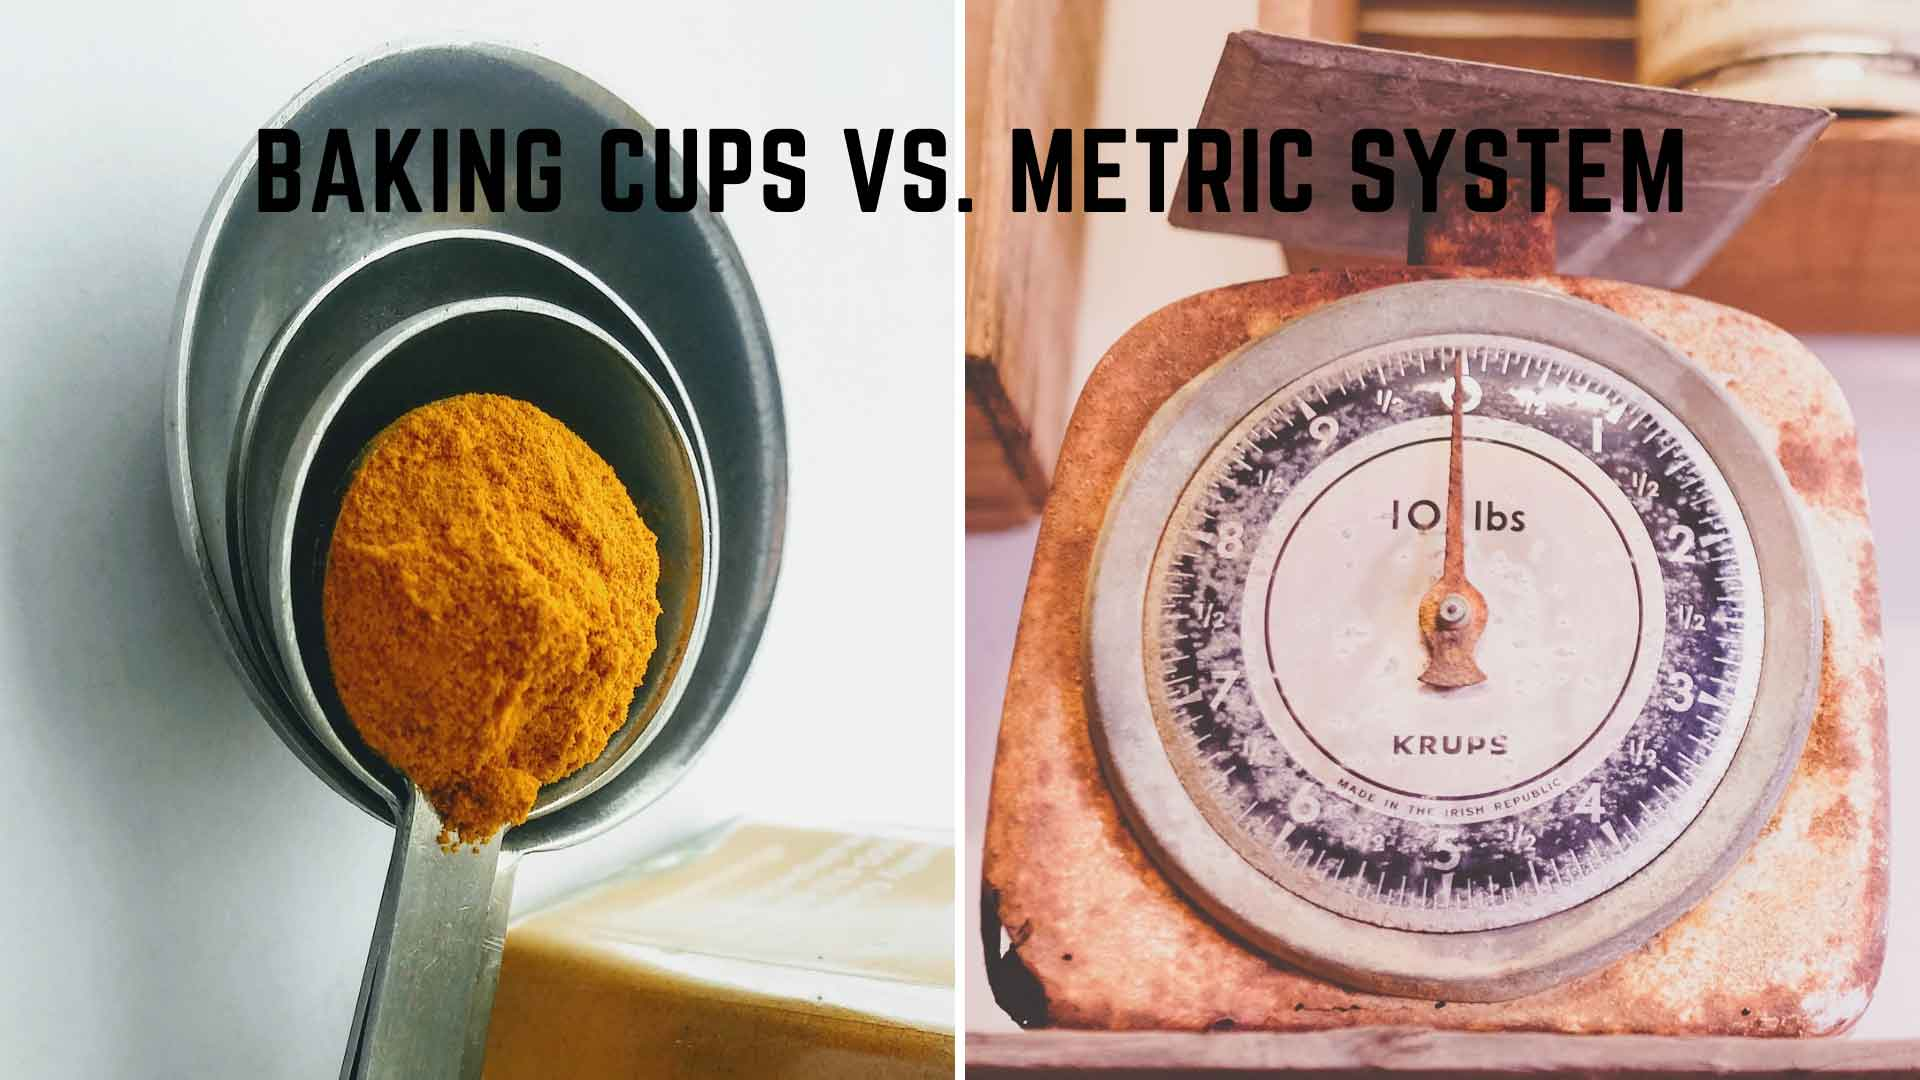 baking cups vs metric system